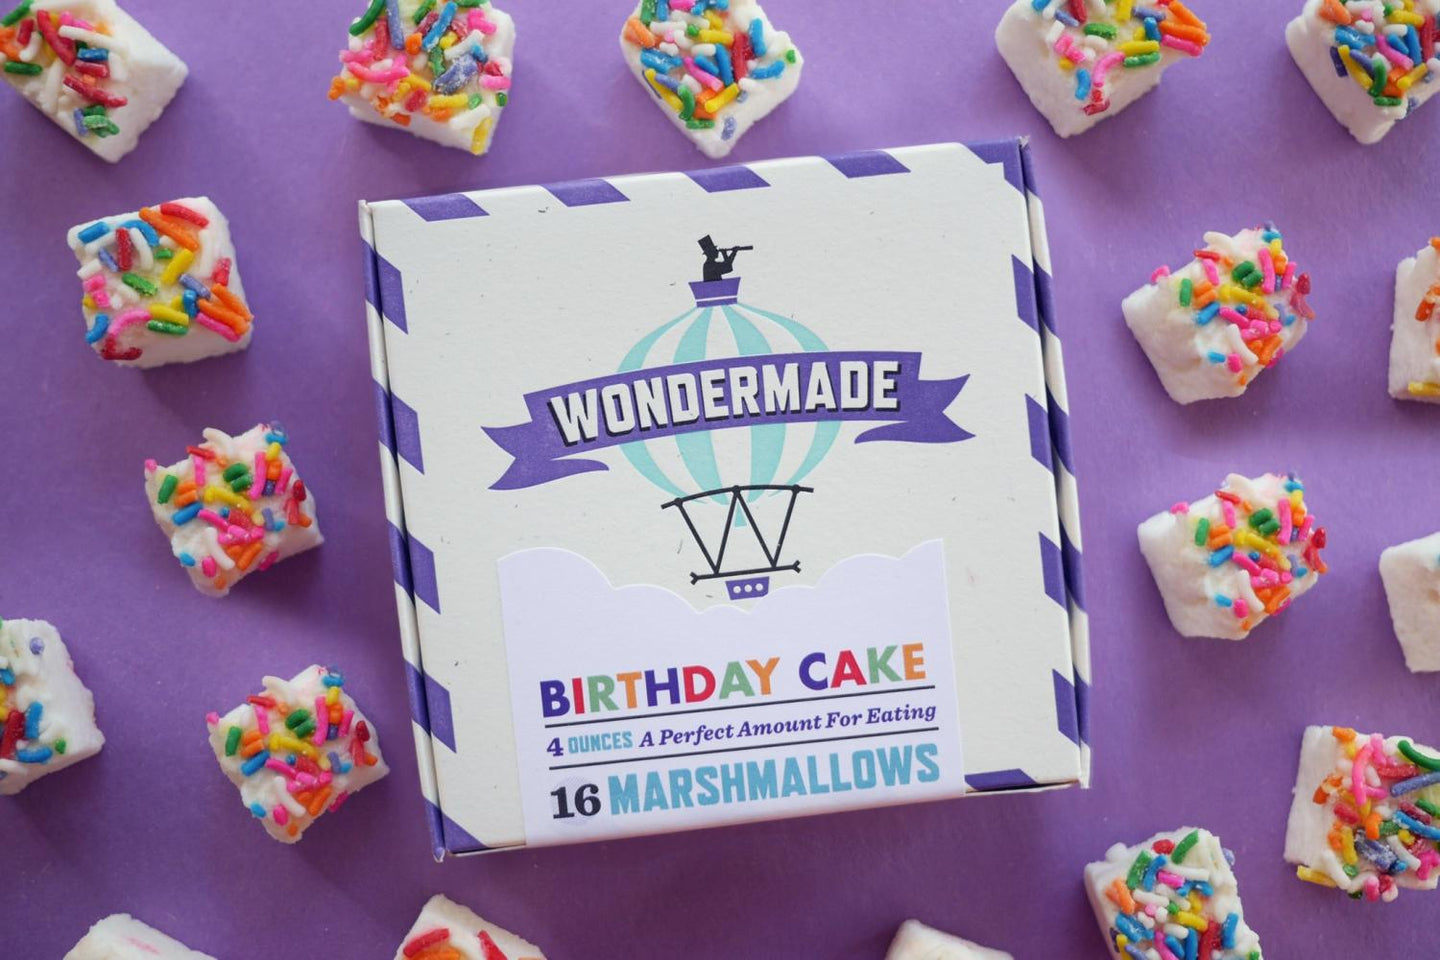 Wondermade Marshmallows Birthday Cake